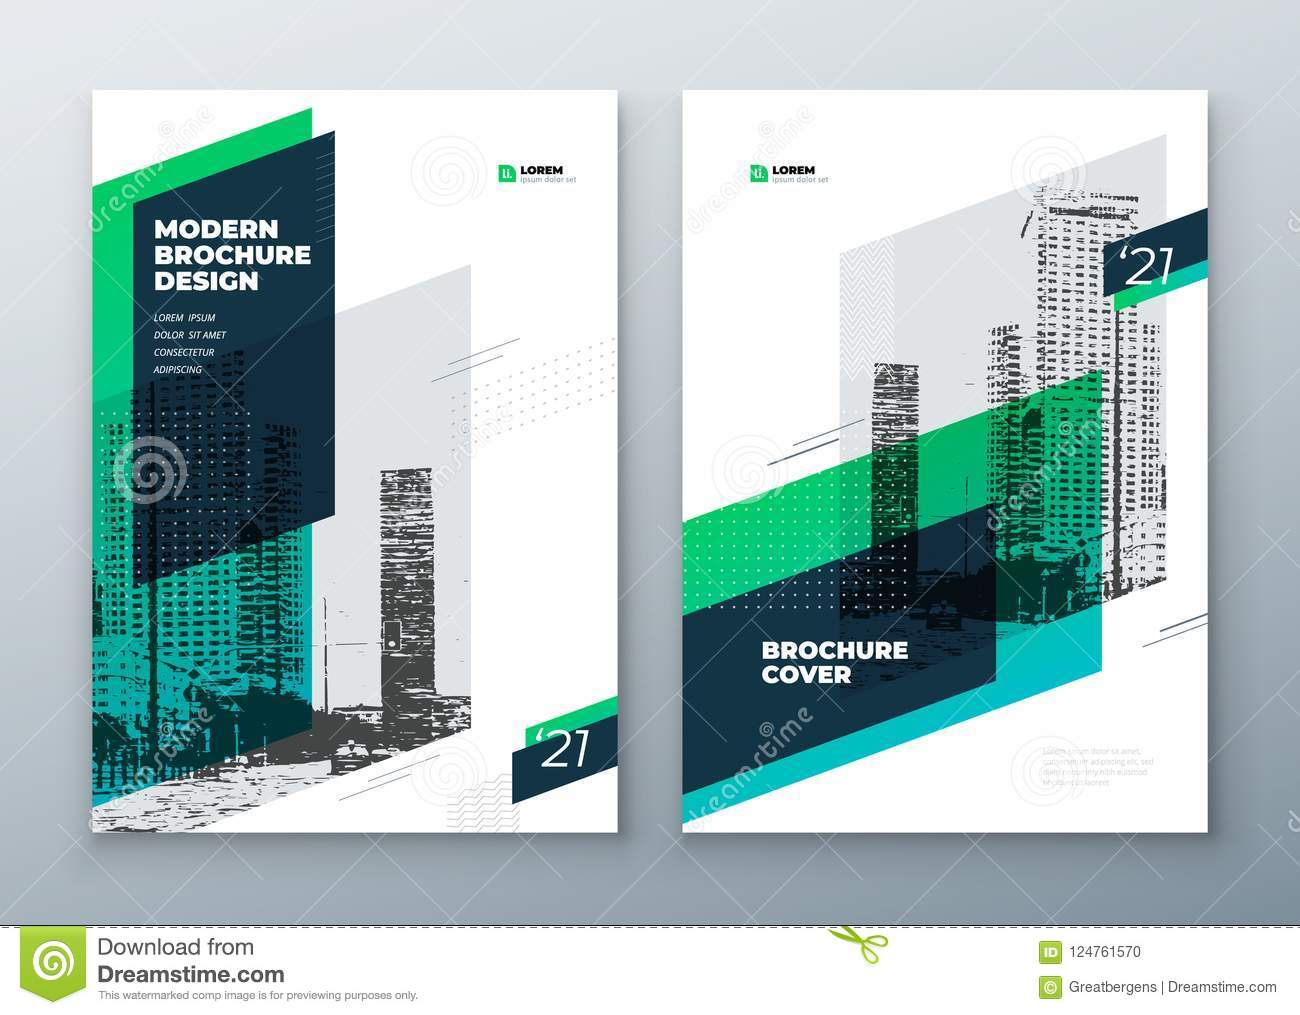 Brochure template layout design. Corporate business annual report, catalog, magazine, brochure, flyer mockup. Creative